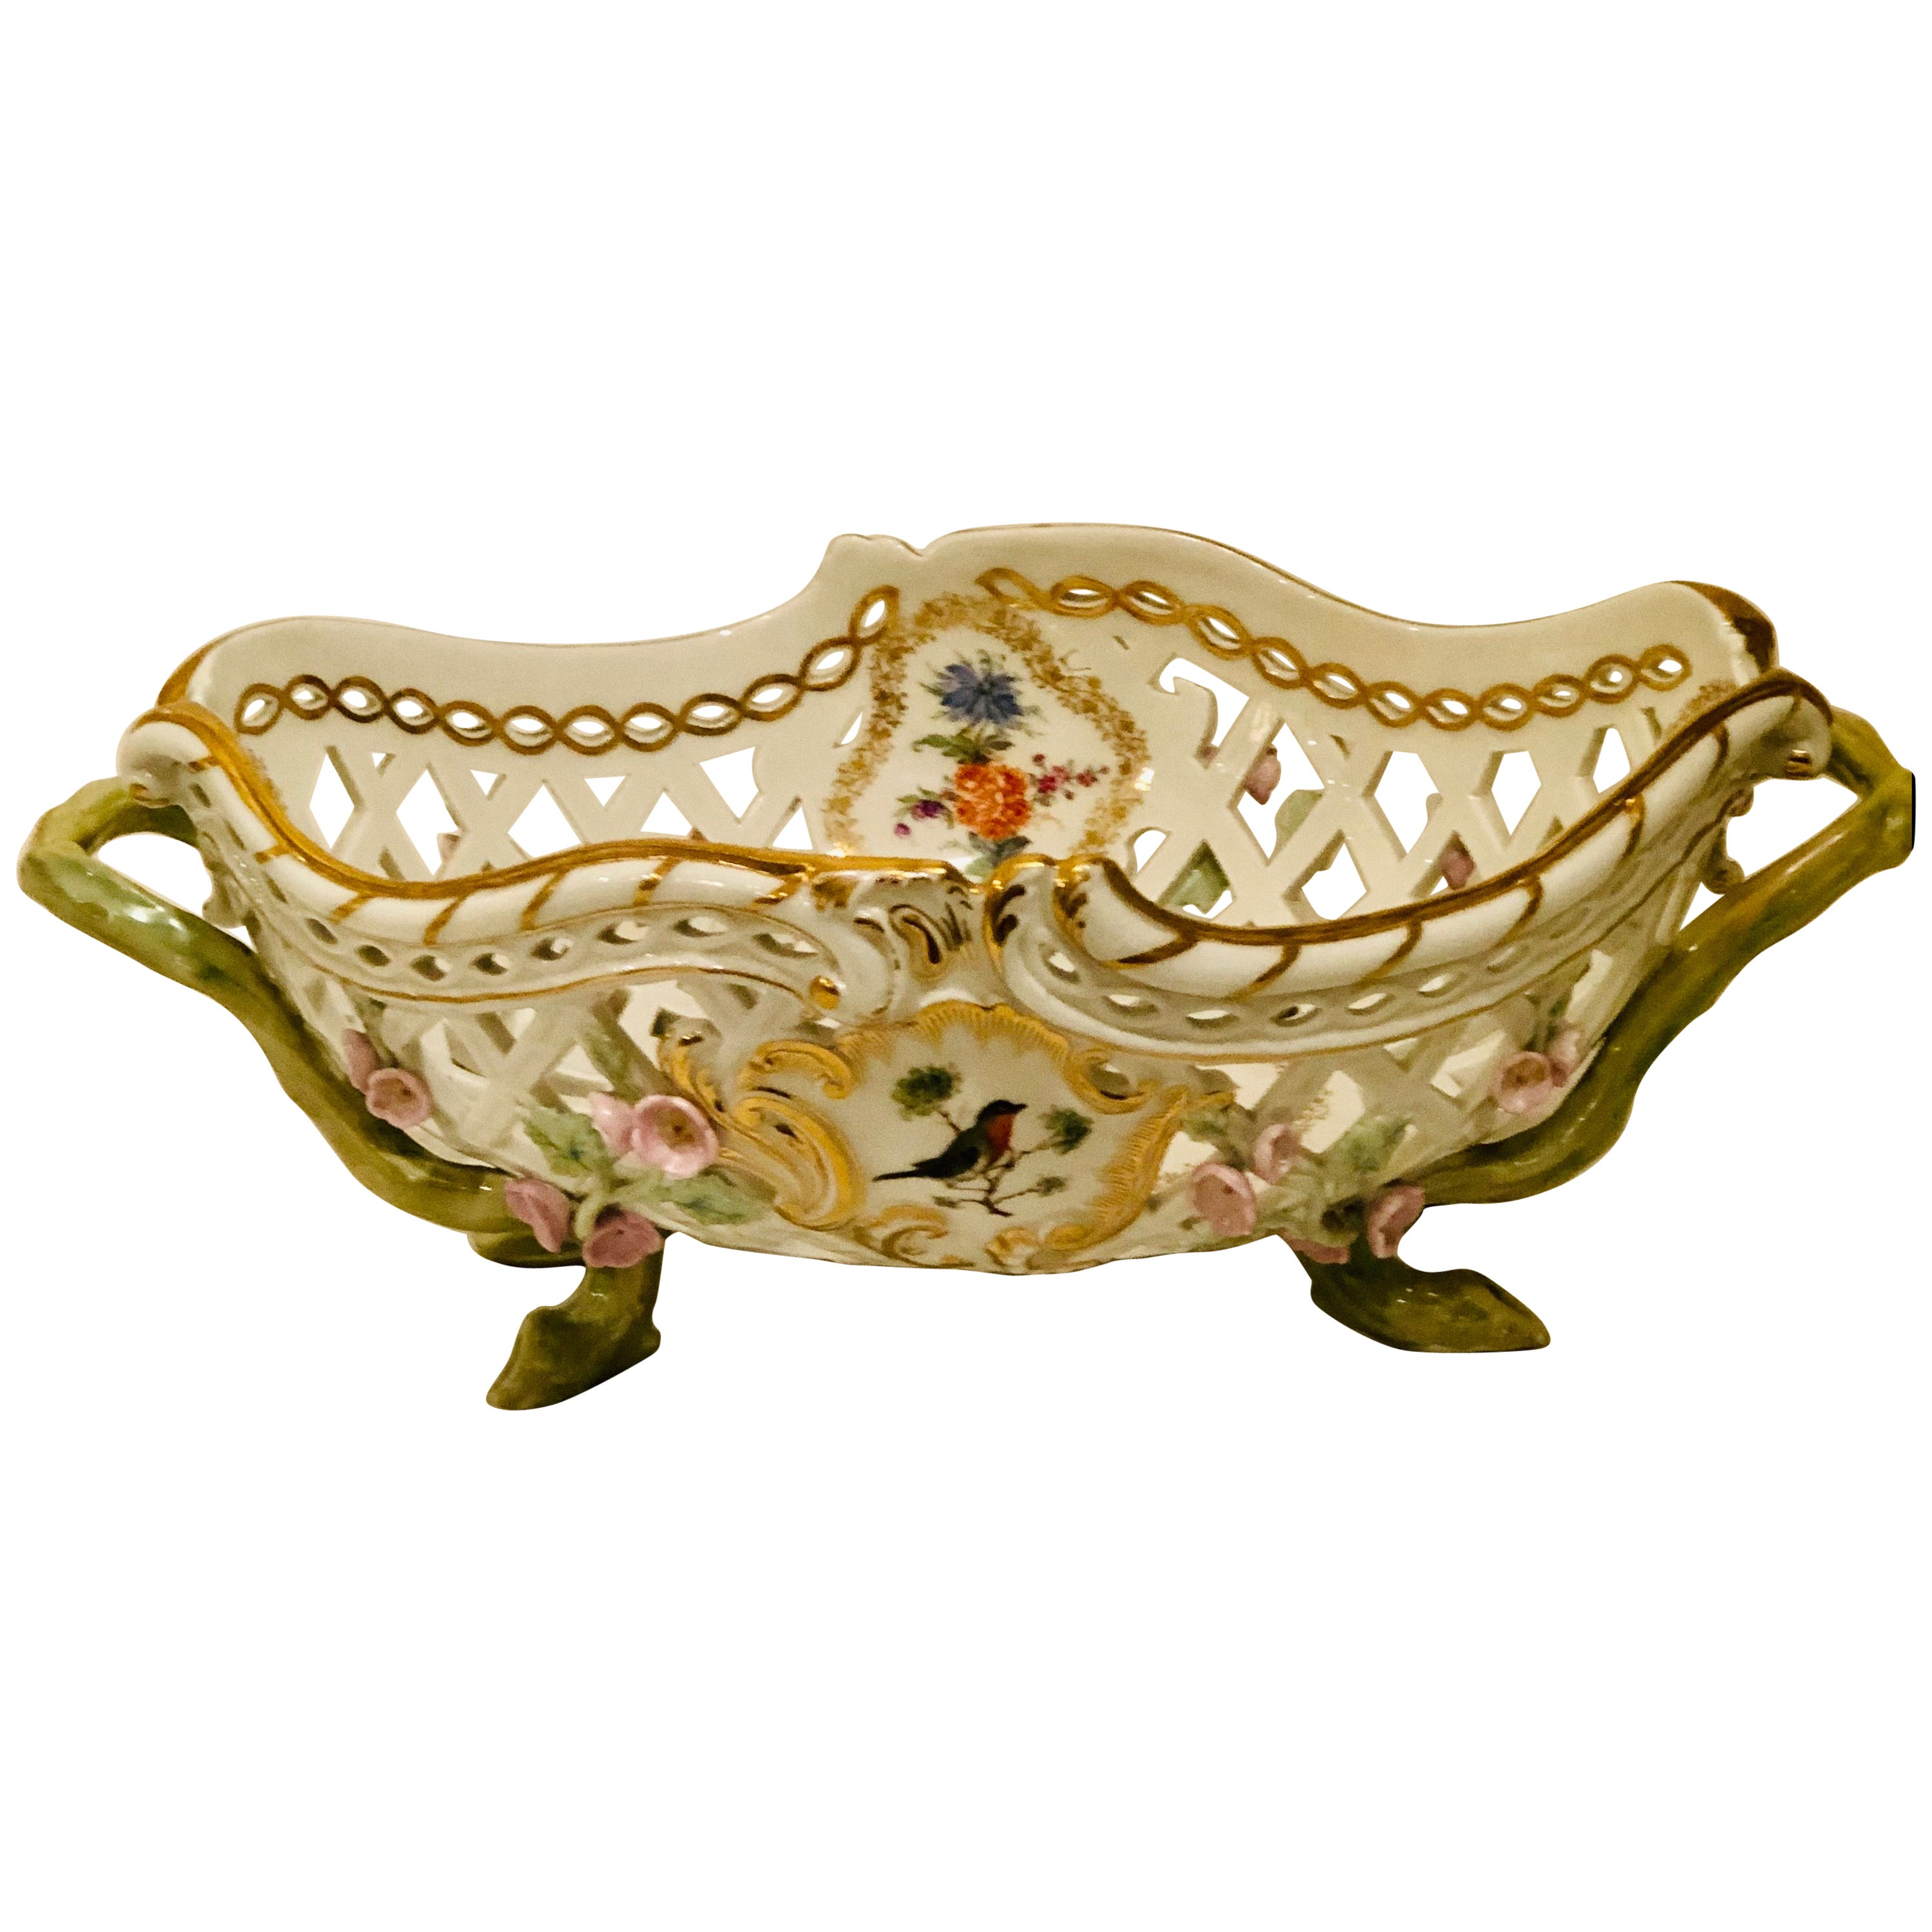 KPM Reticulated Bowl with Raised Pink Flowers and Painted Birds